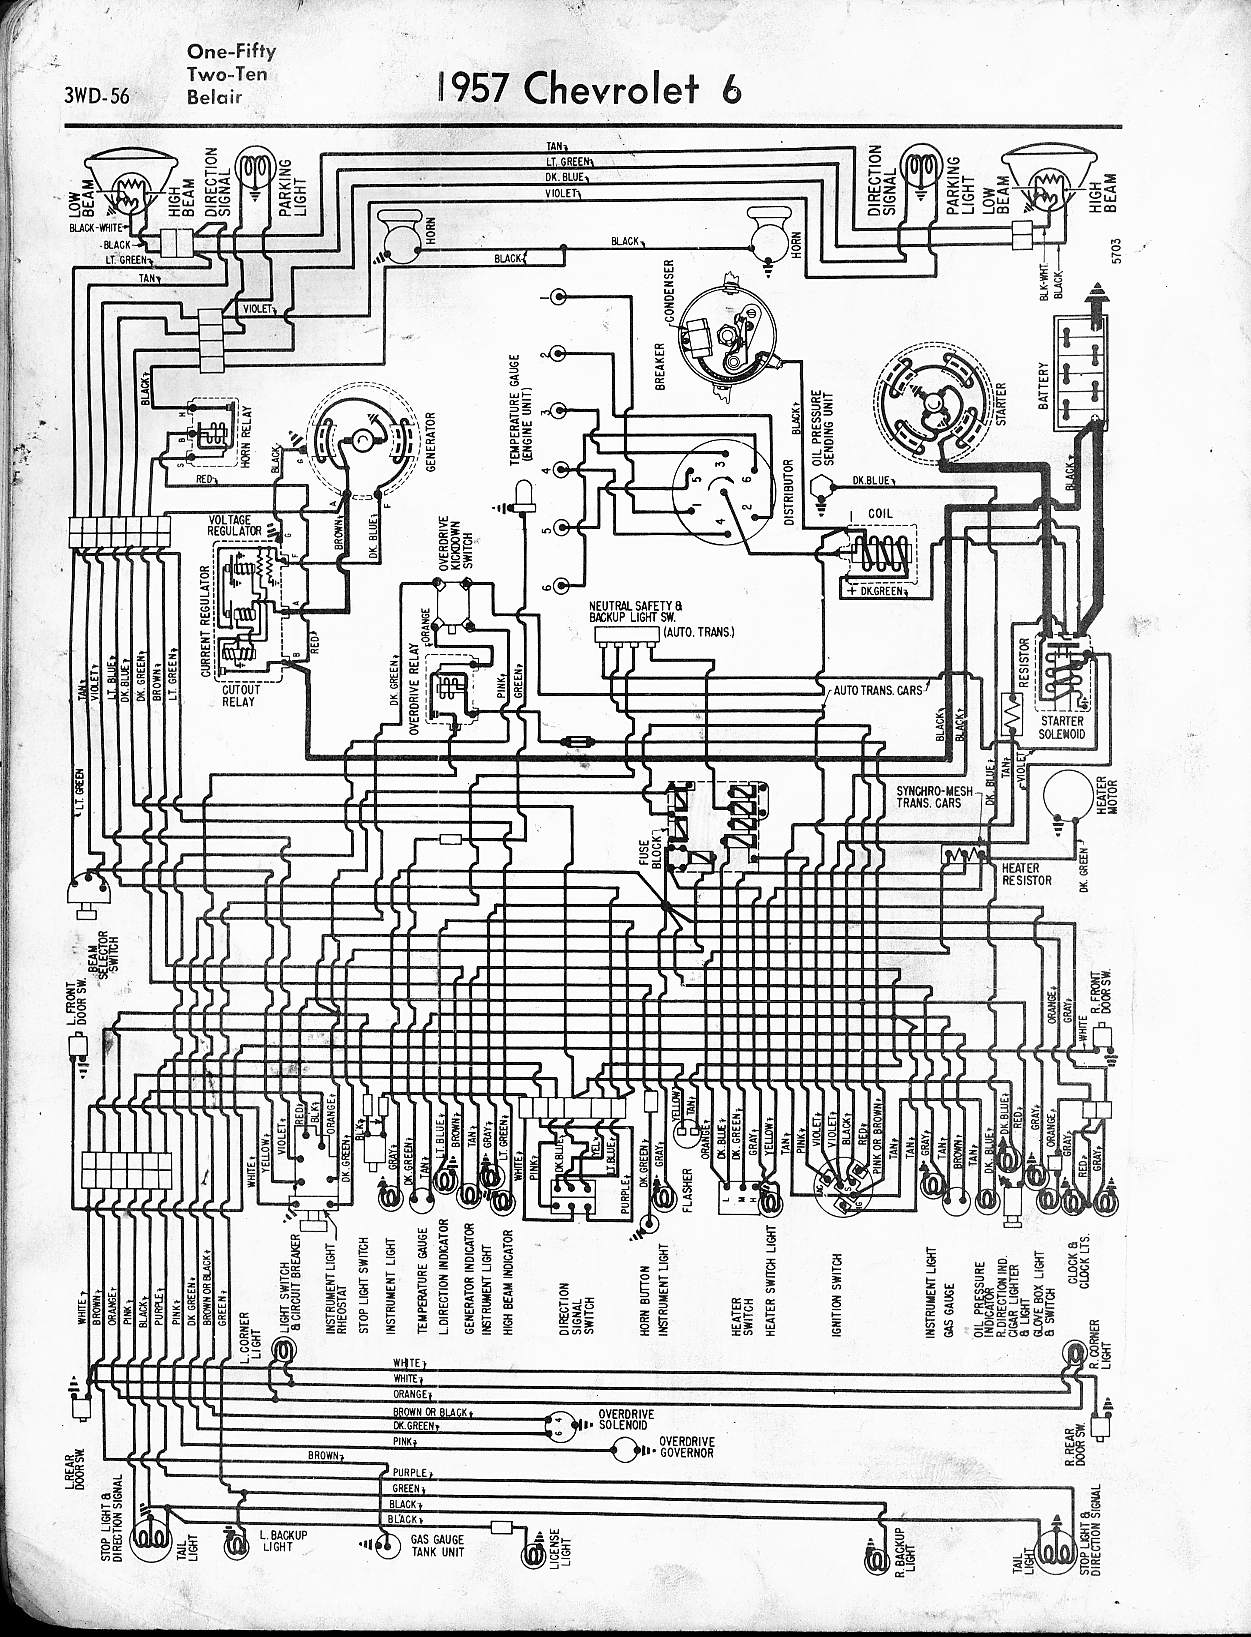 1957 chevrolet bel air wiring diagram content resource of wiring 67 camaro  wiring diagram 57 65